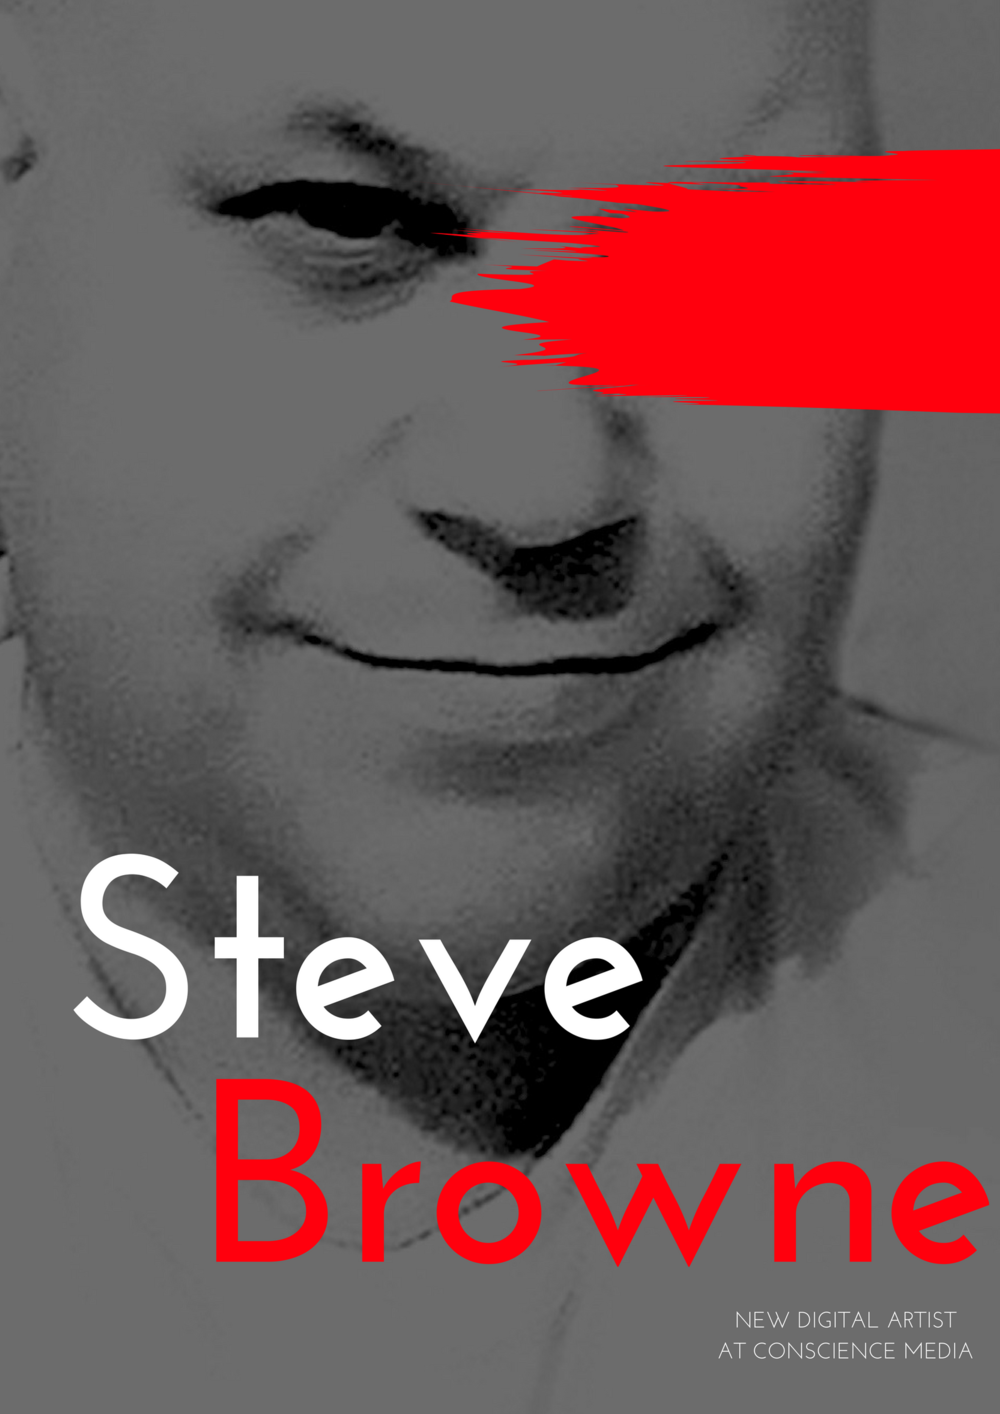 I have great hopes of working with Anna. I just know we have a great connection, and Anna loves my work. - Steve Browne